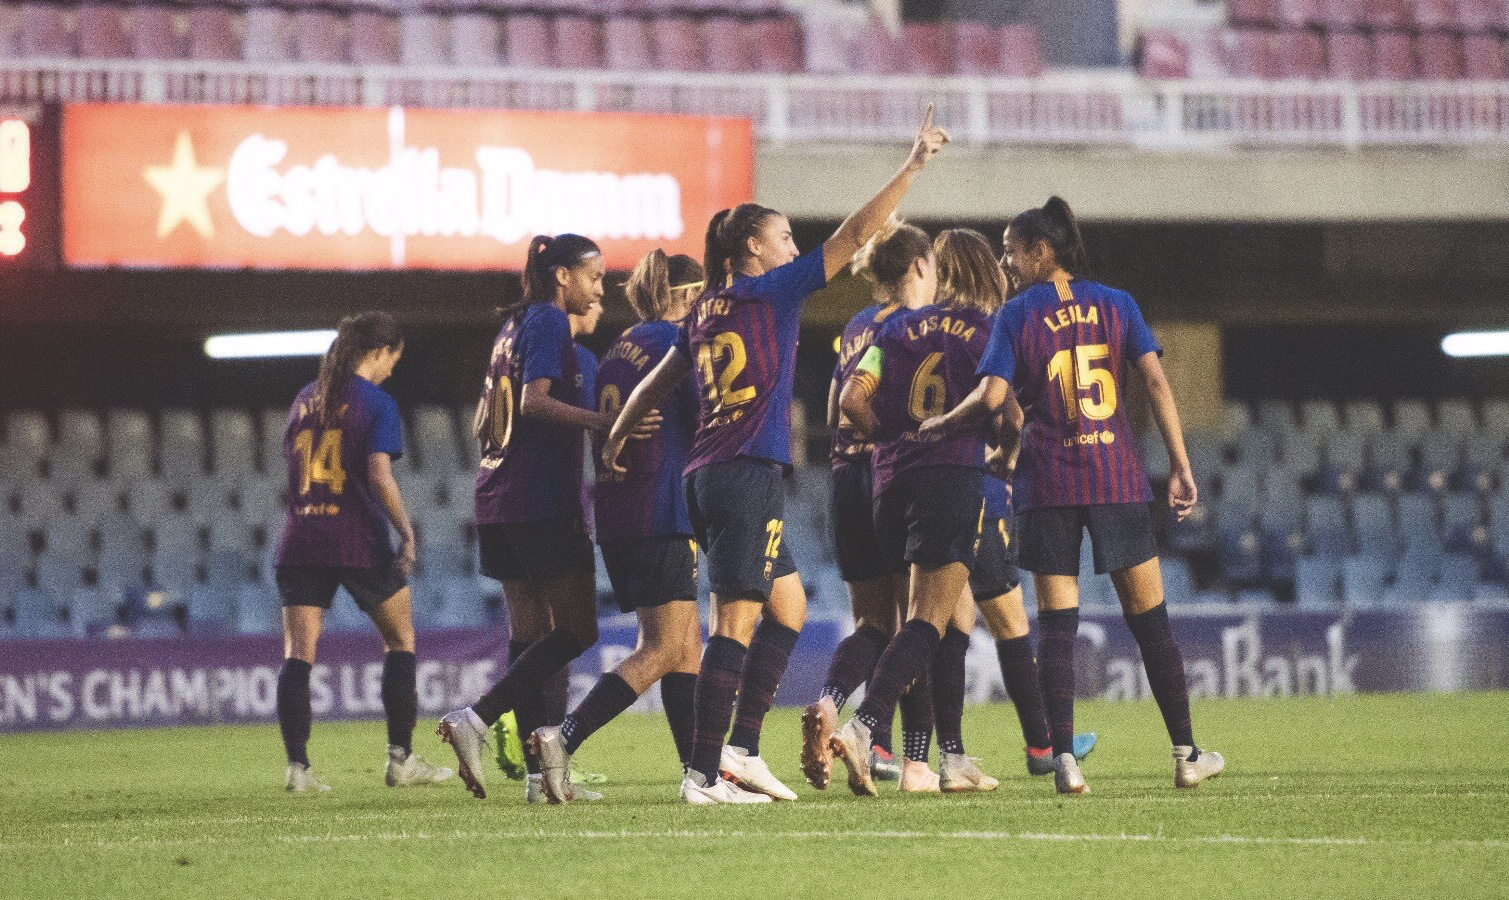 FC Barcelona Femení celebrate scoring against Glasgow City in the Women's Champions League